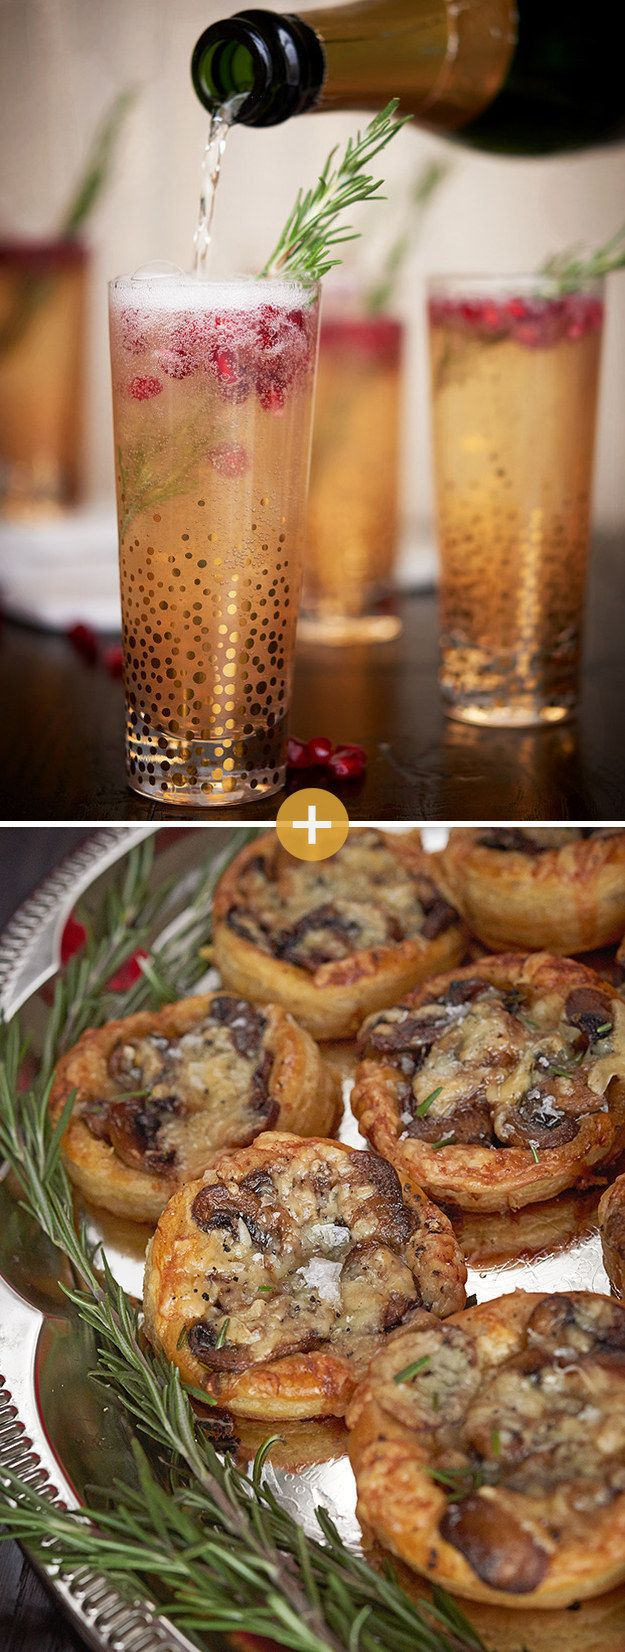 26 Delicious Things To Serve At Your Holiday Party